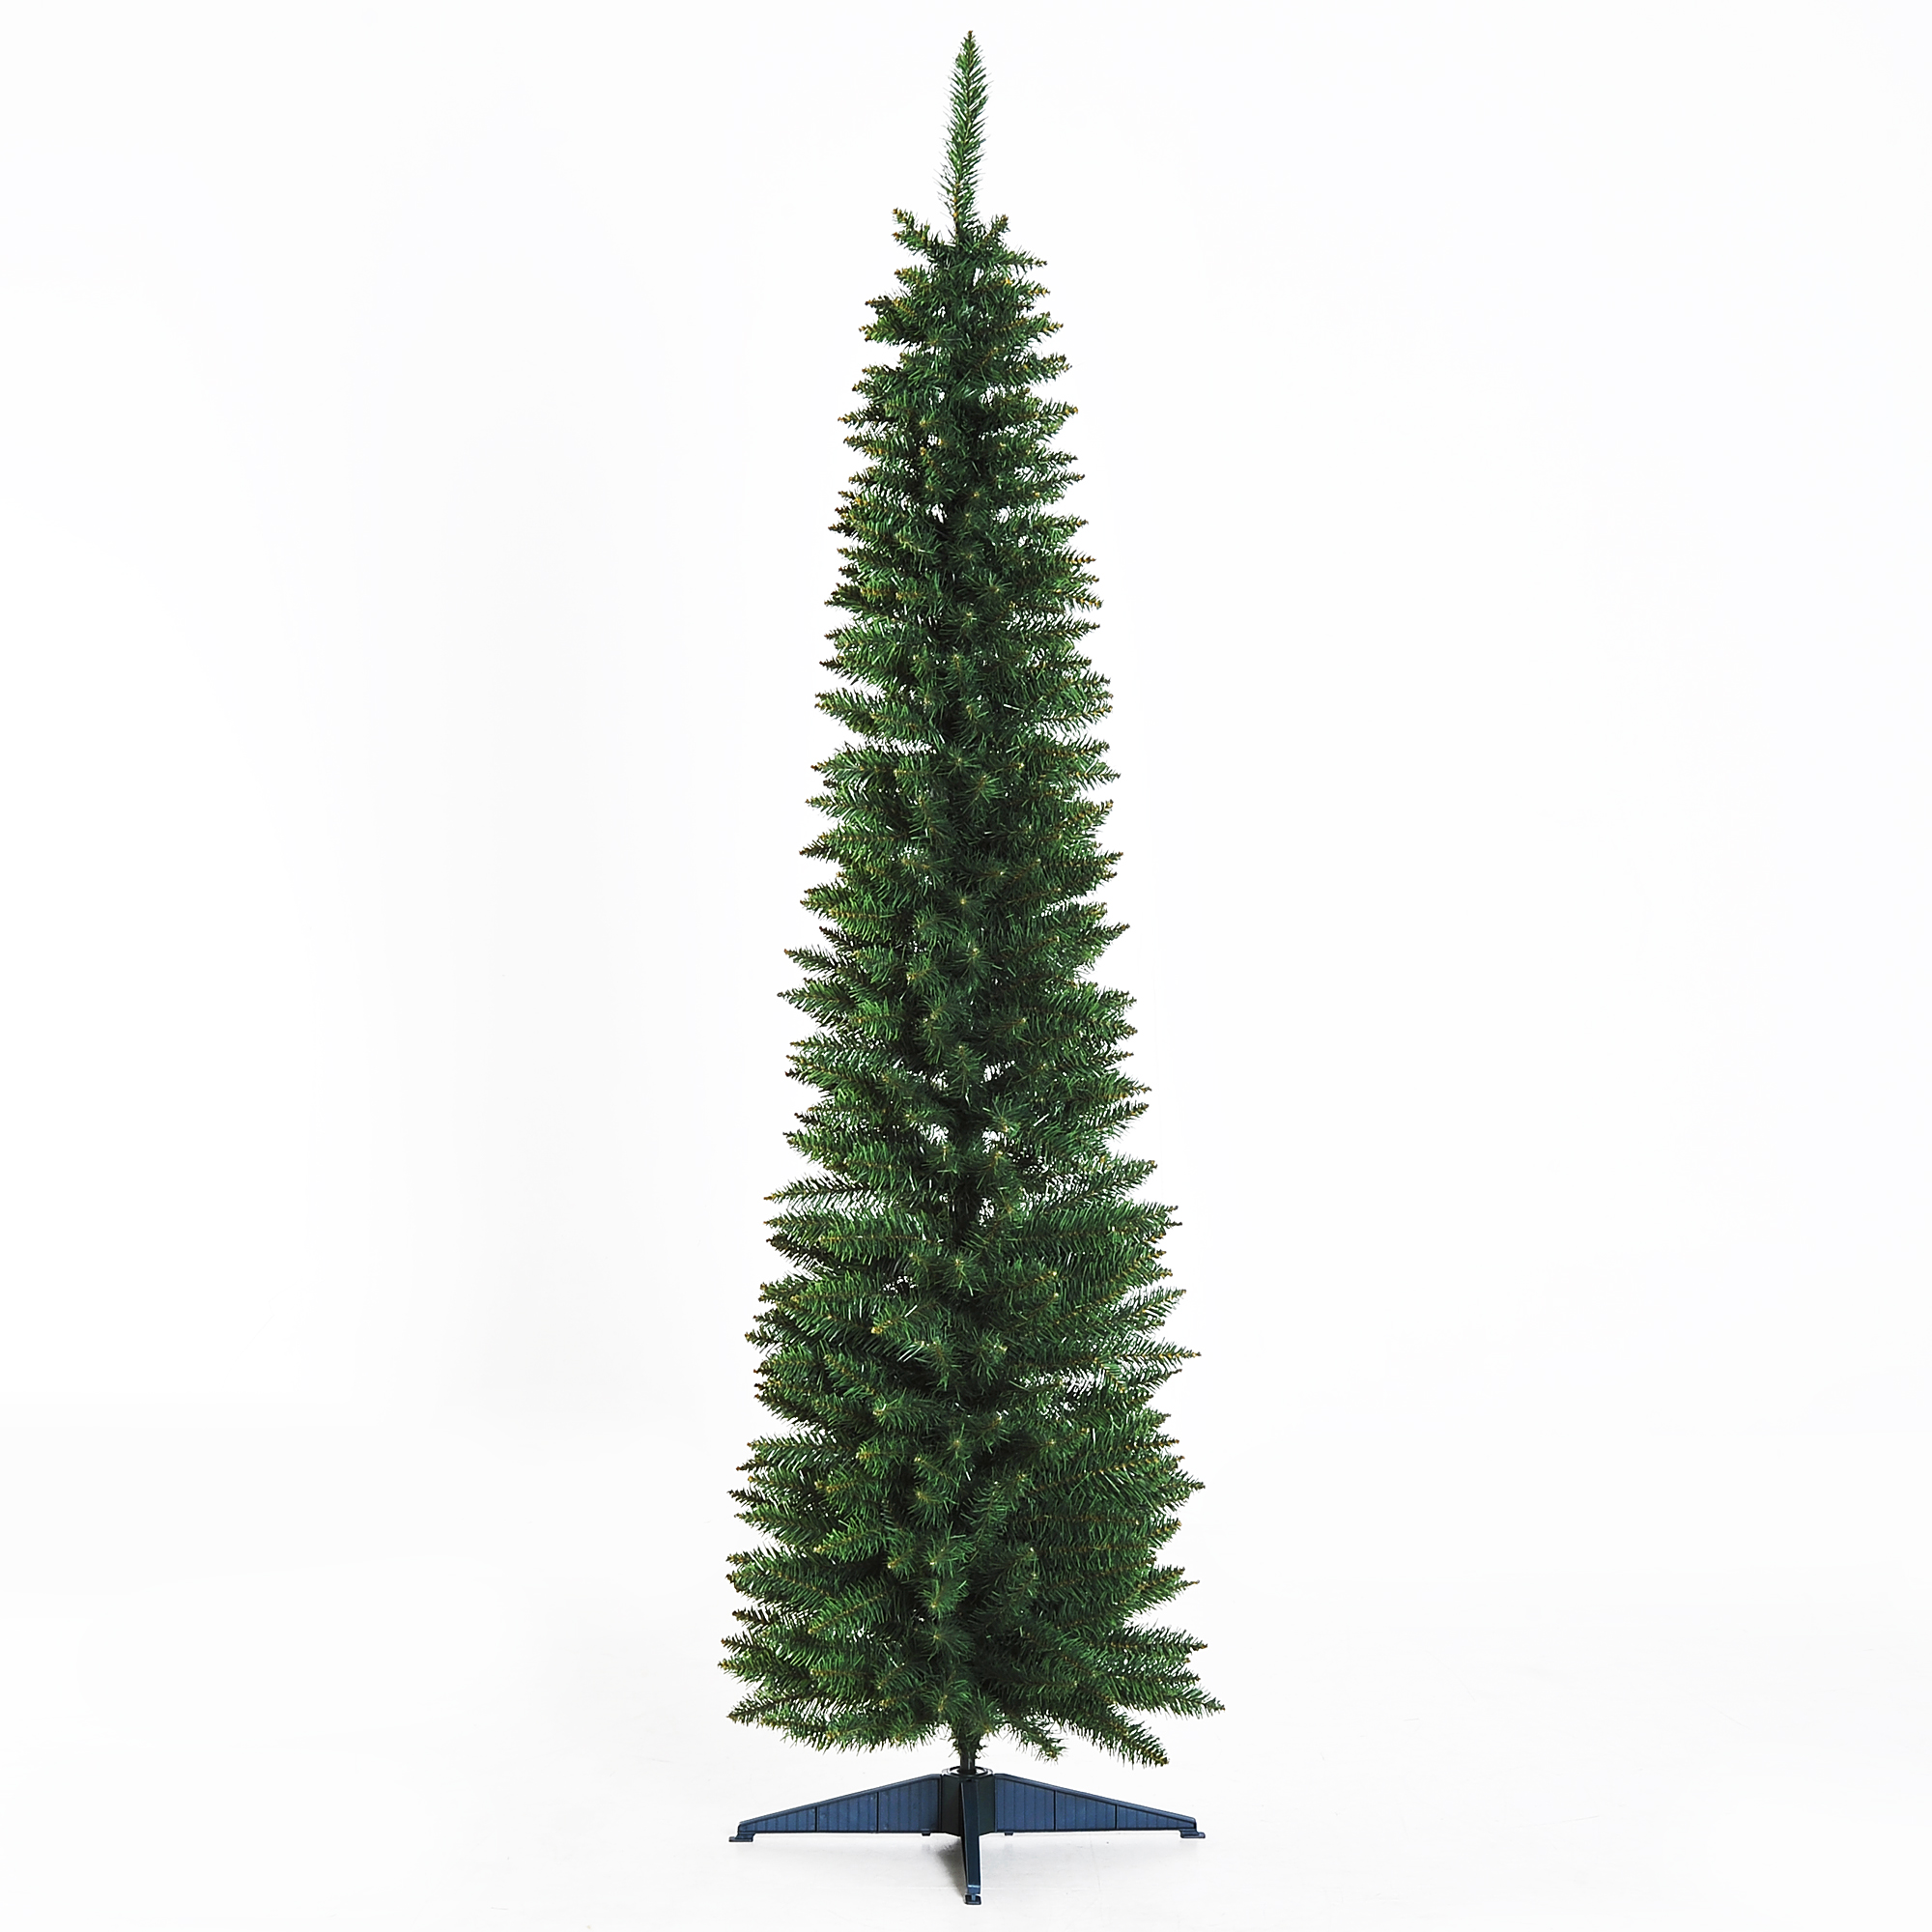 Image of £18.99 HOMCOM Artificial Pine Tree, 1.8m, Plastic Stand / 1.8m 6ft Pencil Slim Tall Christmas Tree with 390 Branch Tips Xmas Holiday Décor Easy Assembly W/ 830-182 5056029806777